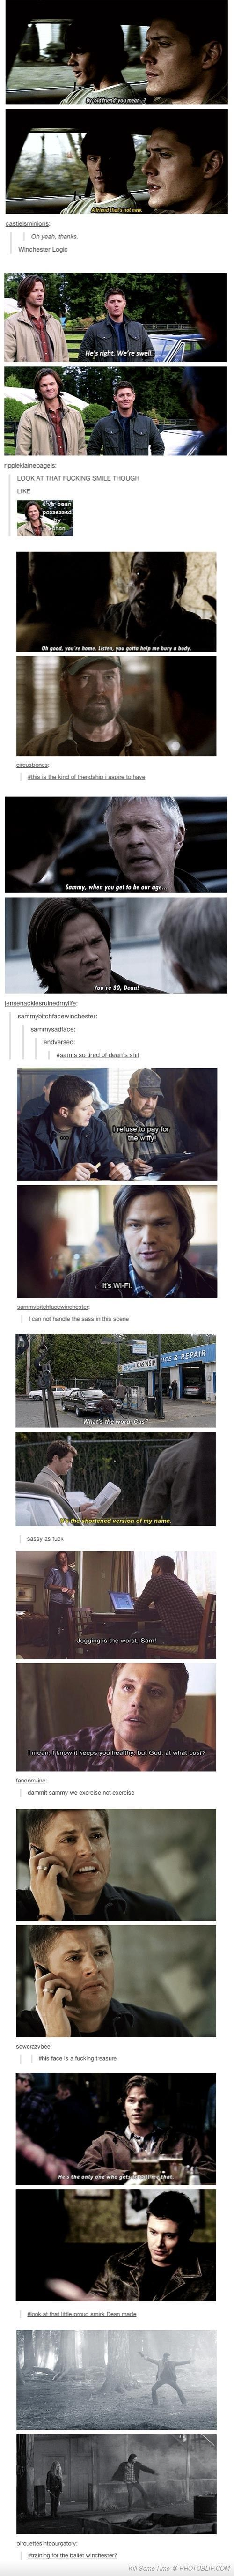 Just give me my life back supernatural! Well, actually, maybe not so soon? PLEASE STAY WITH ME!